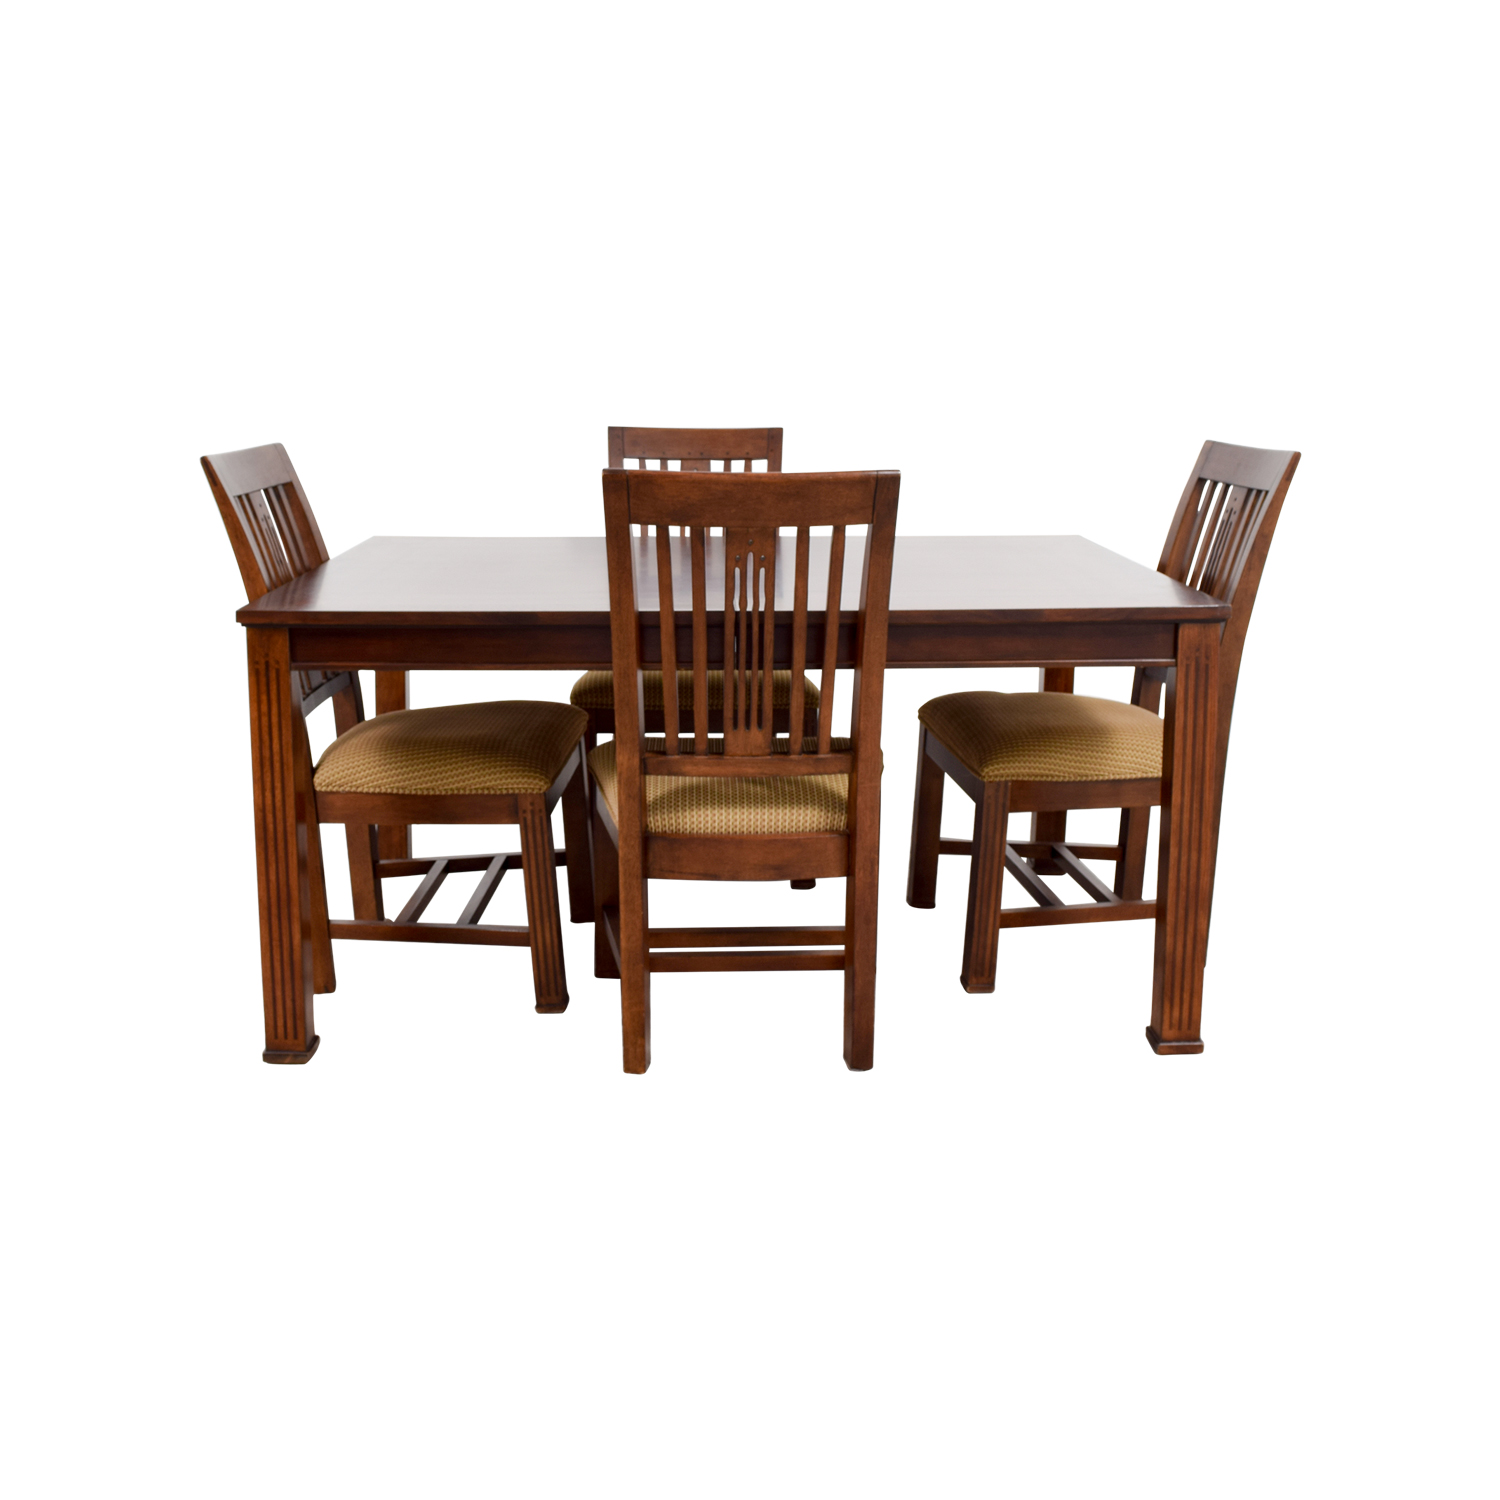 Macy's Macy's Craft Mission Shaker Table and Chairs second hand